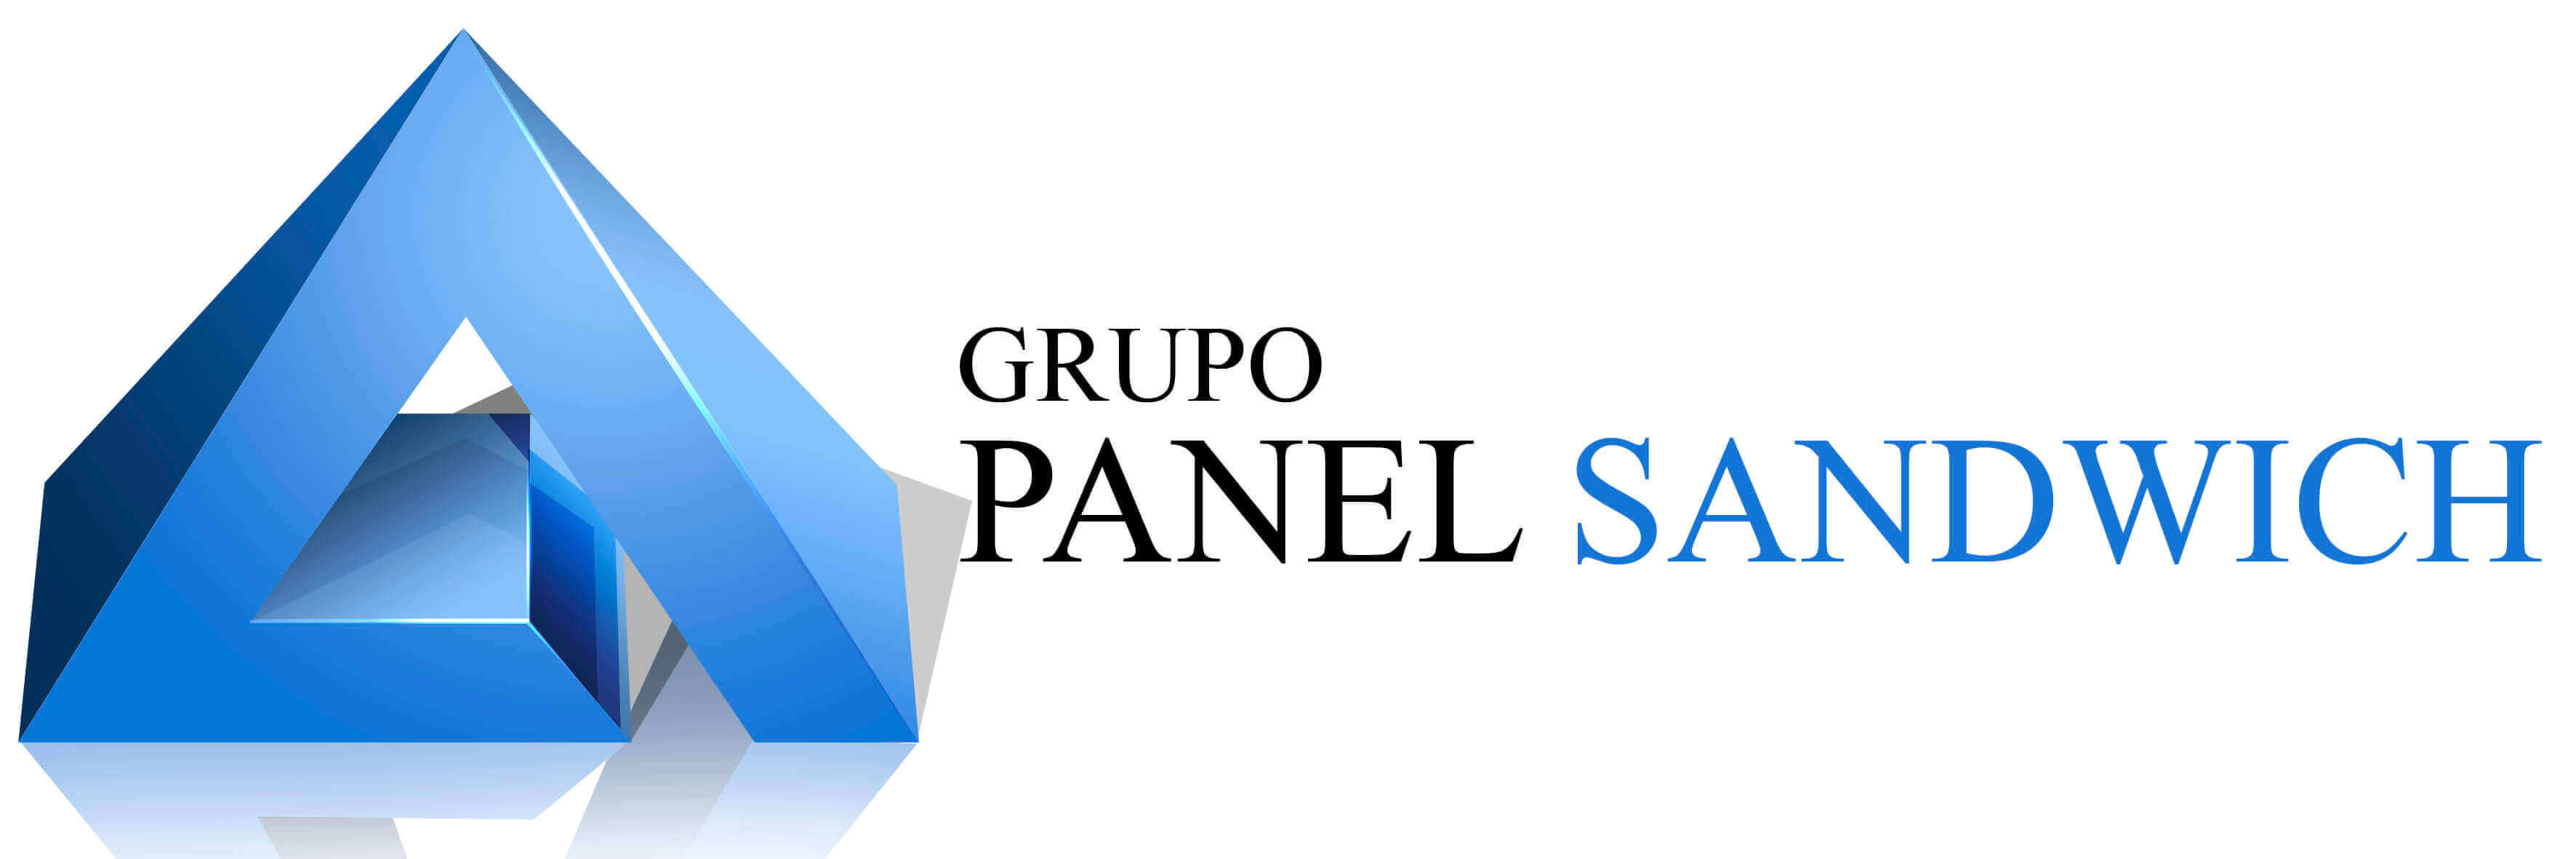 Pannello Sandwich Group, a brand of Panel Sandwich Group